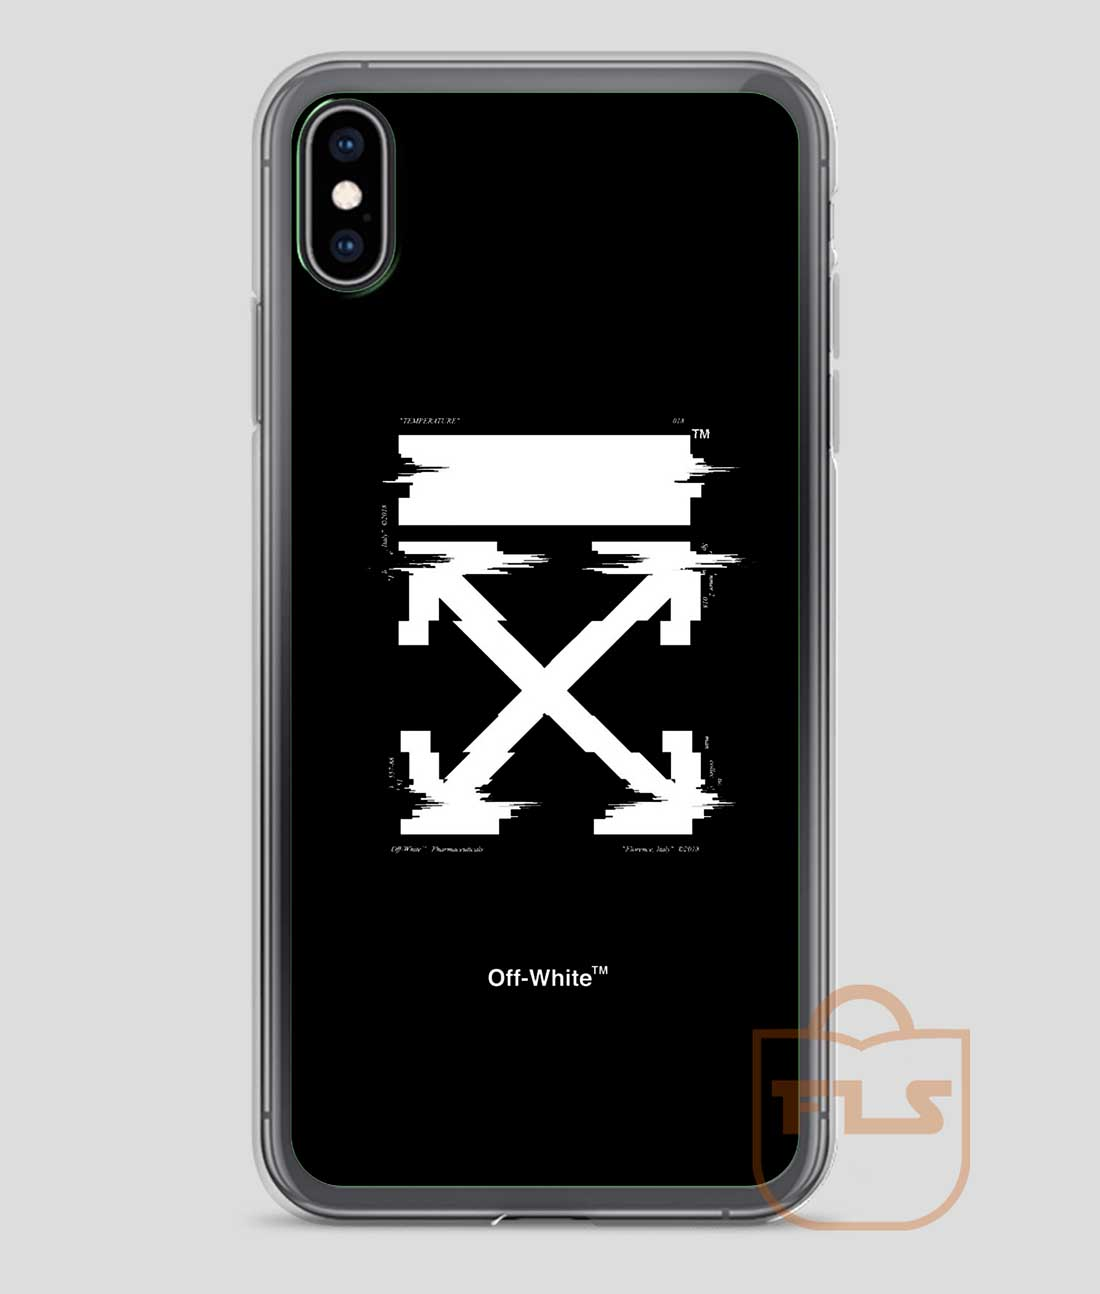 quality design b212d 37cd0 Off-White Arrows Temperature Glitch iPhone Case X XS XR XS Max